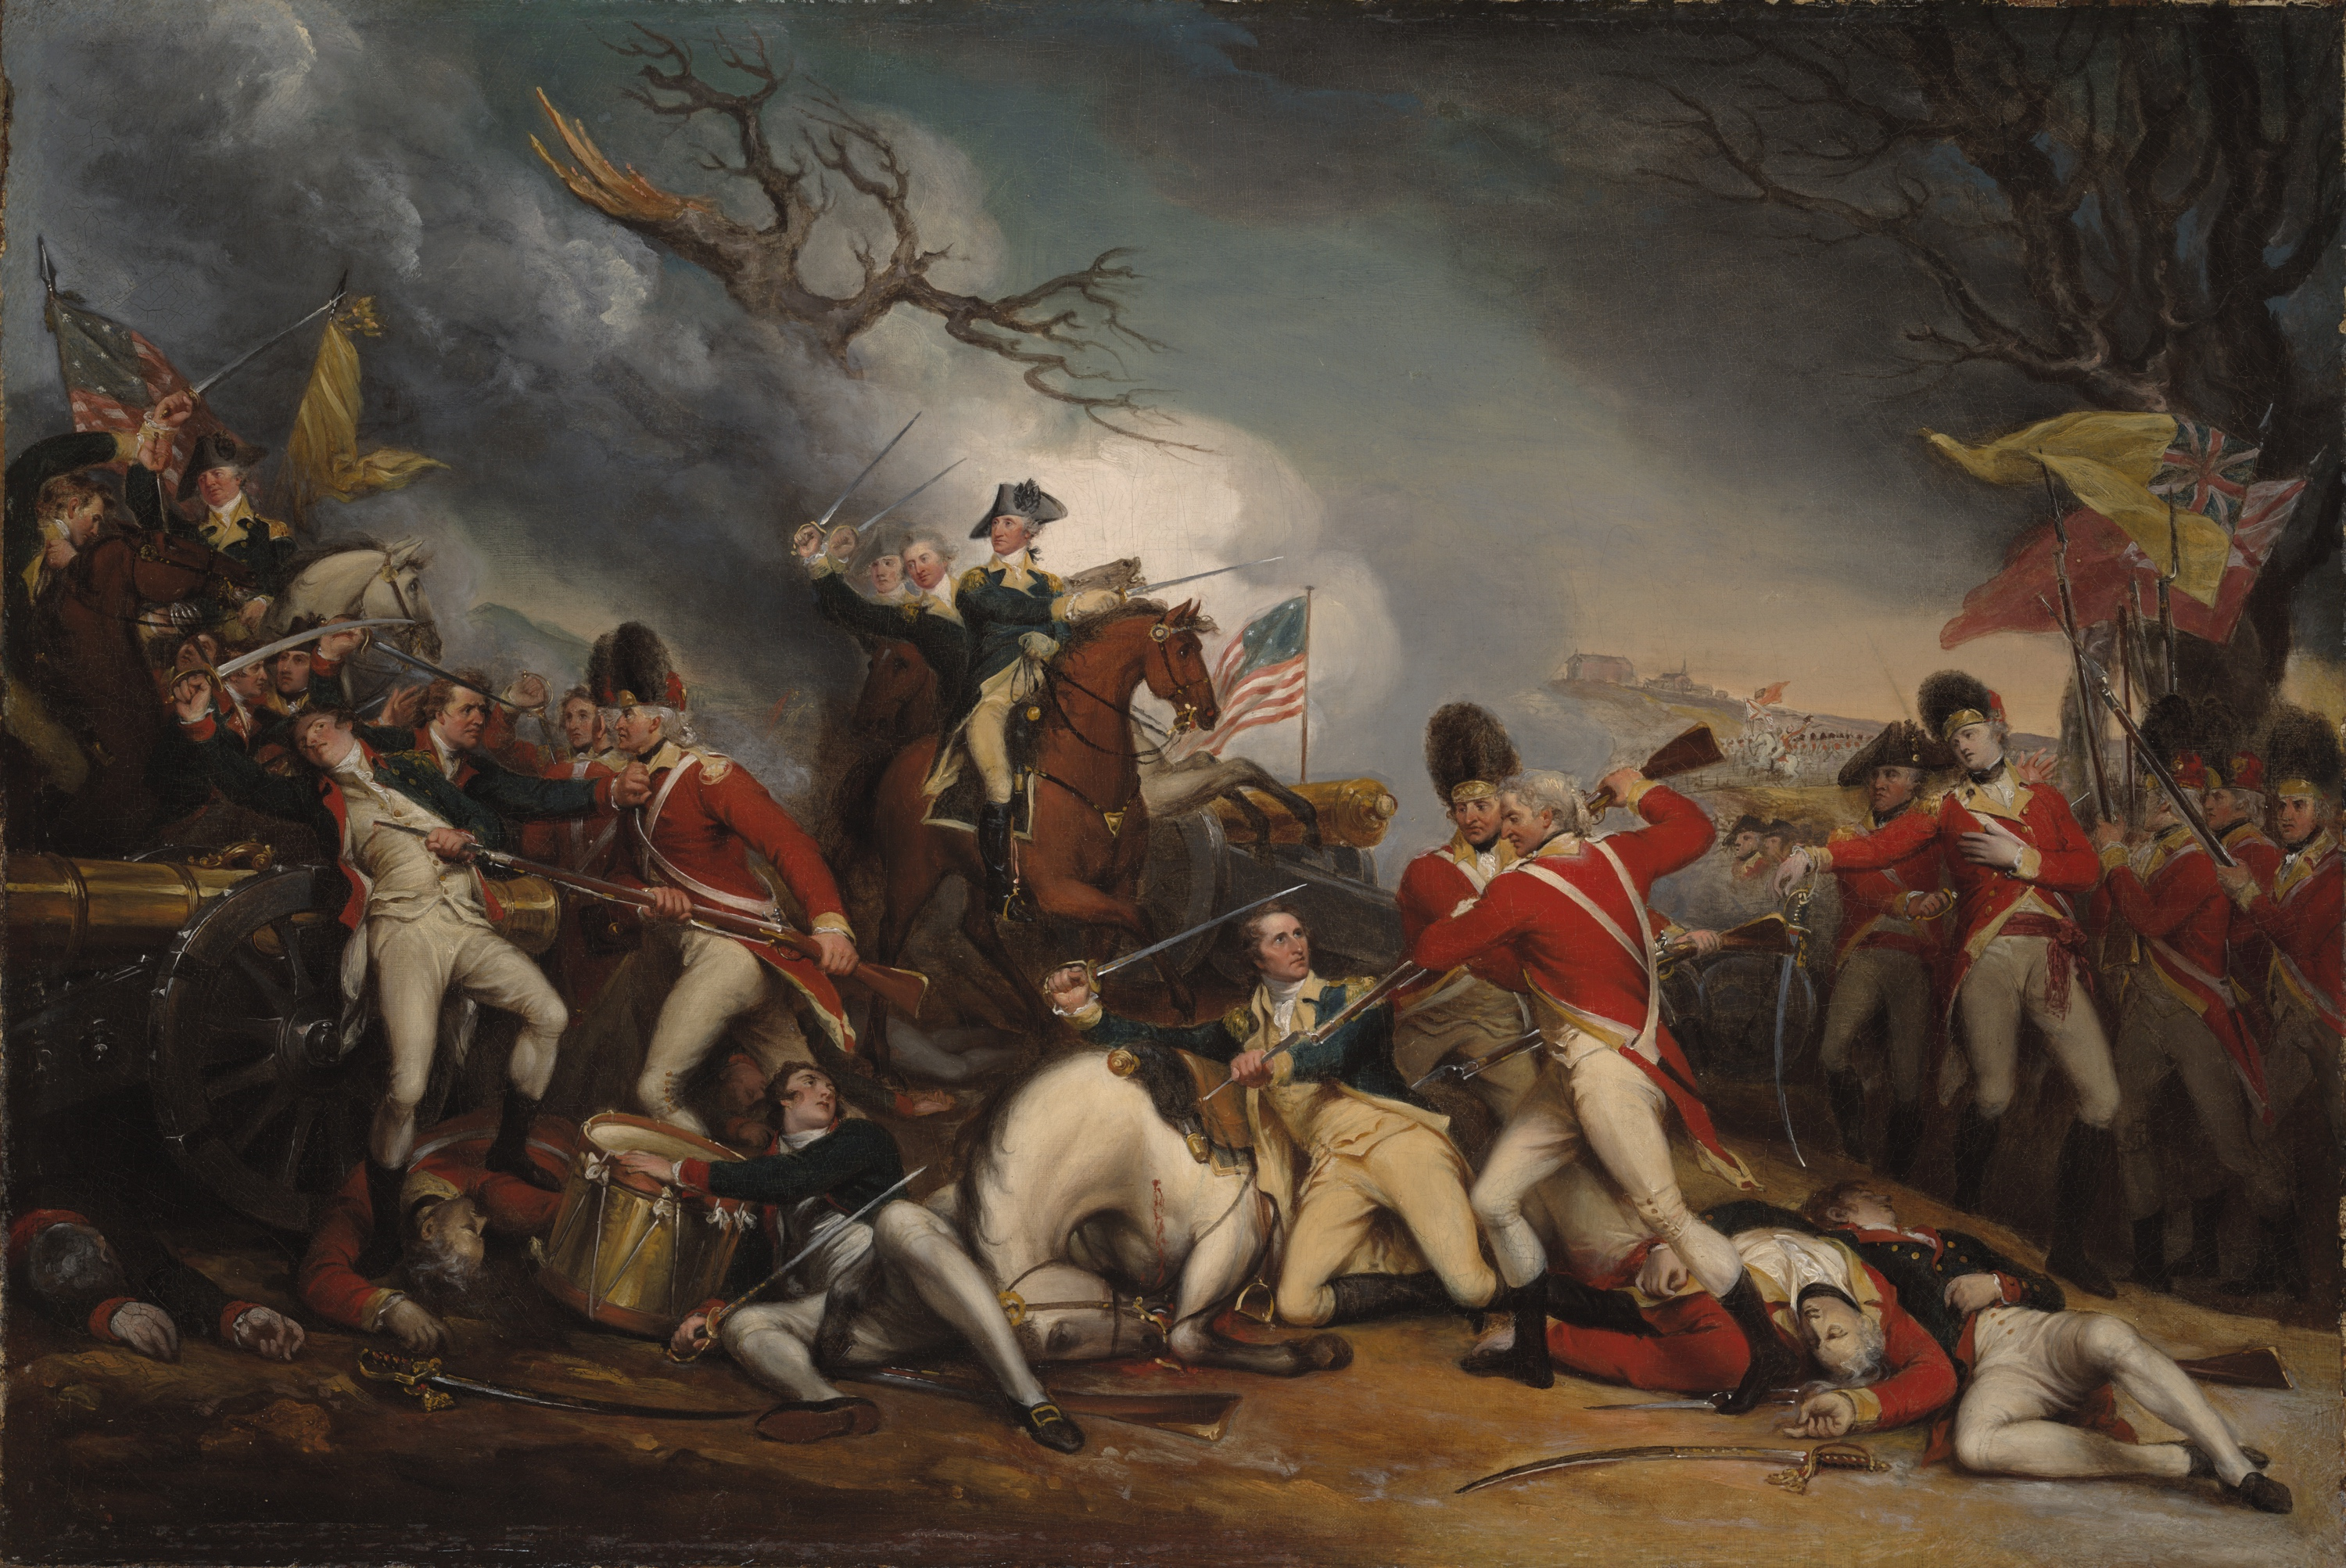 7 interesting facts you didn't know about the War of Independence